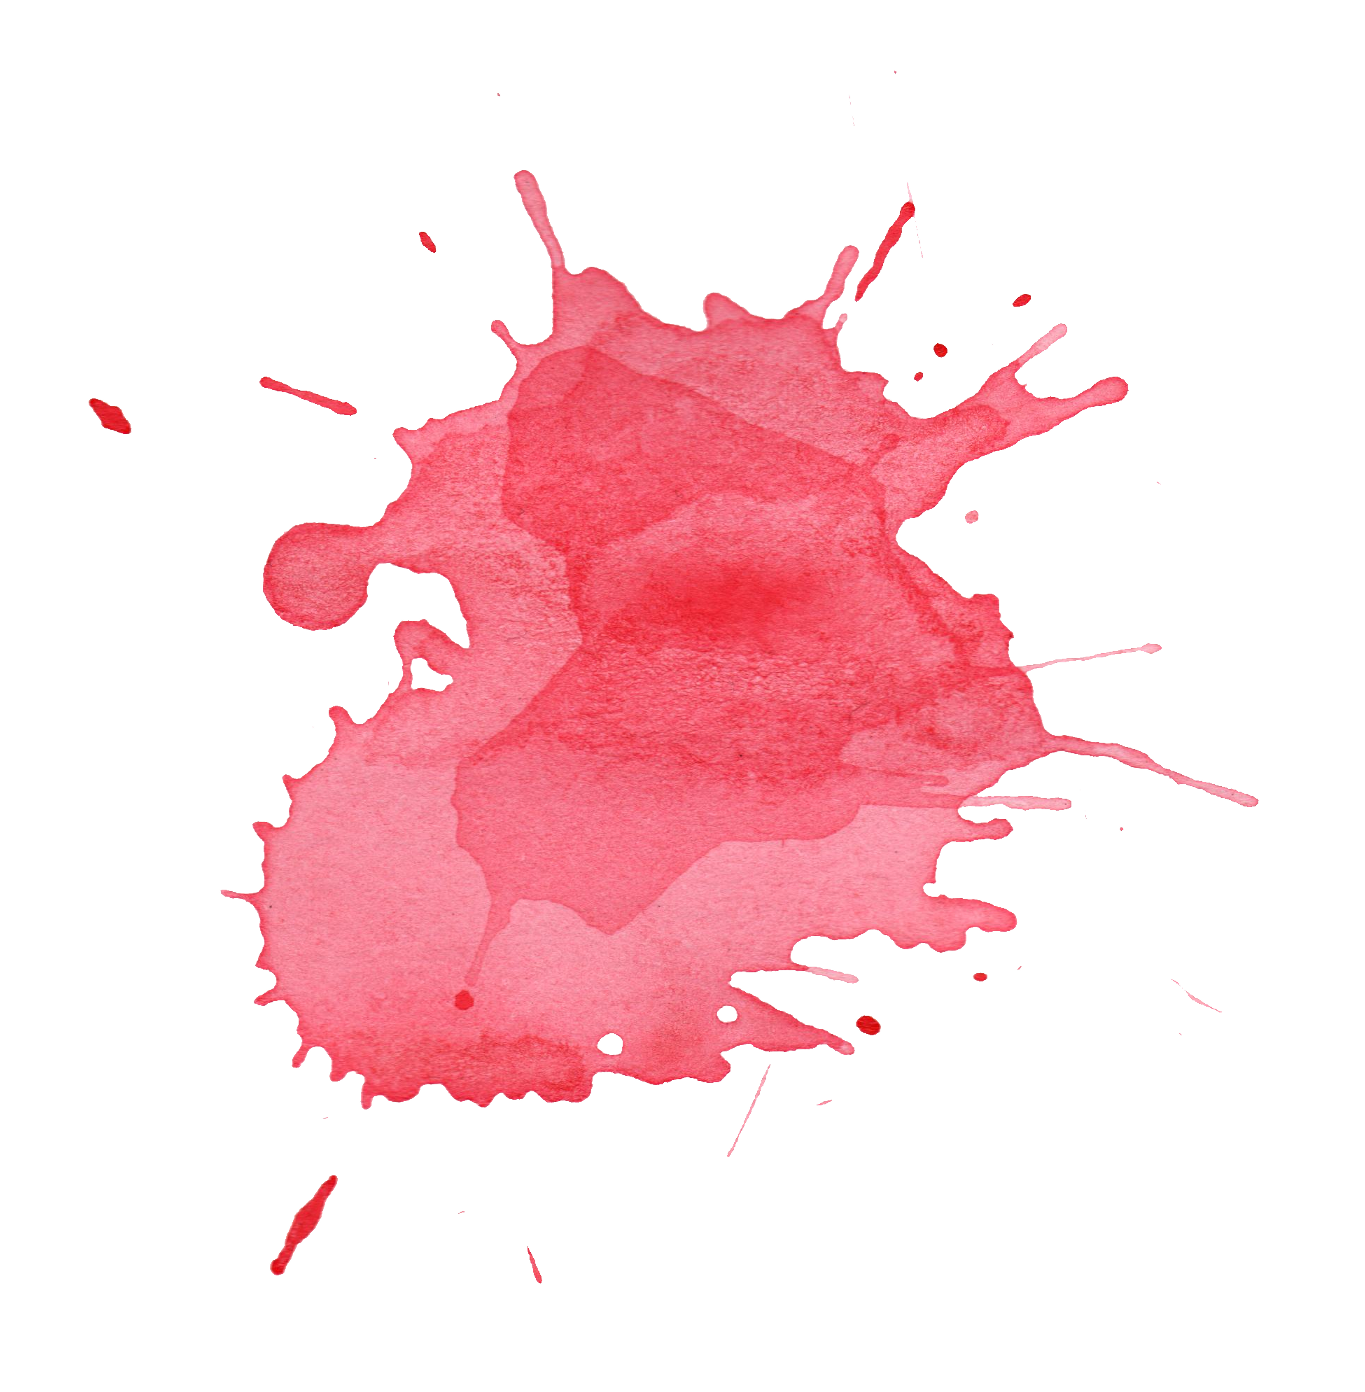 Color splatter png. Red watercolor transparent